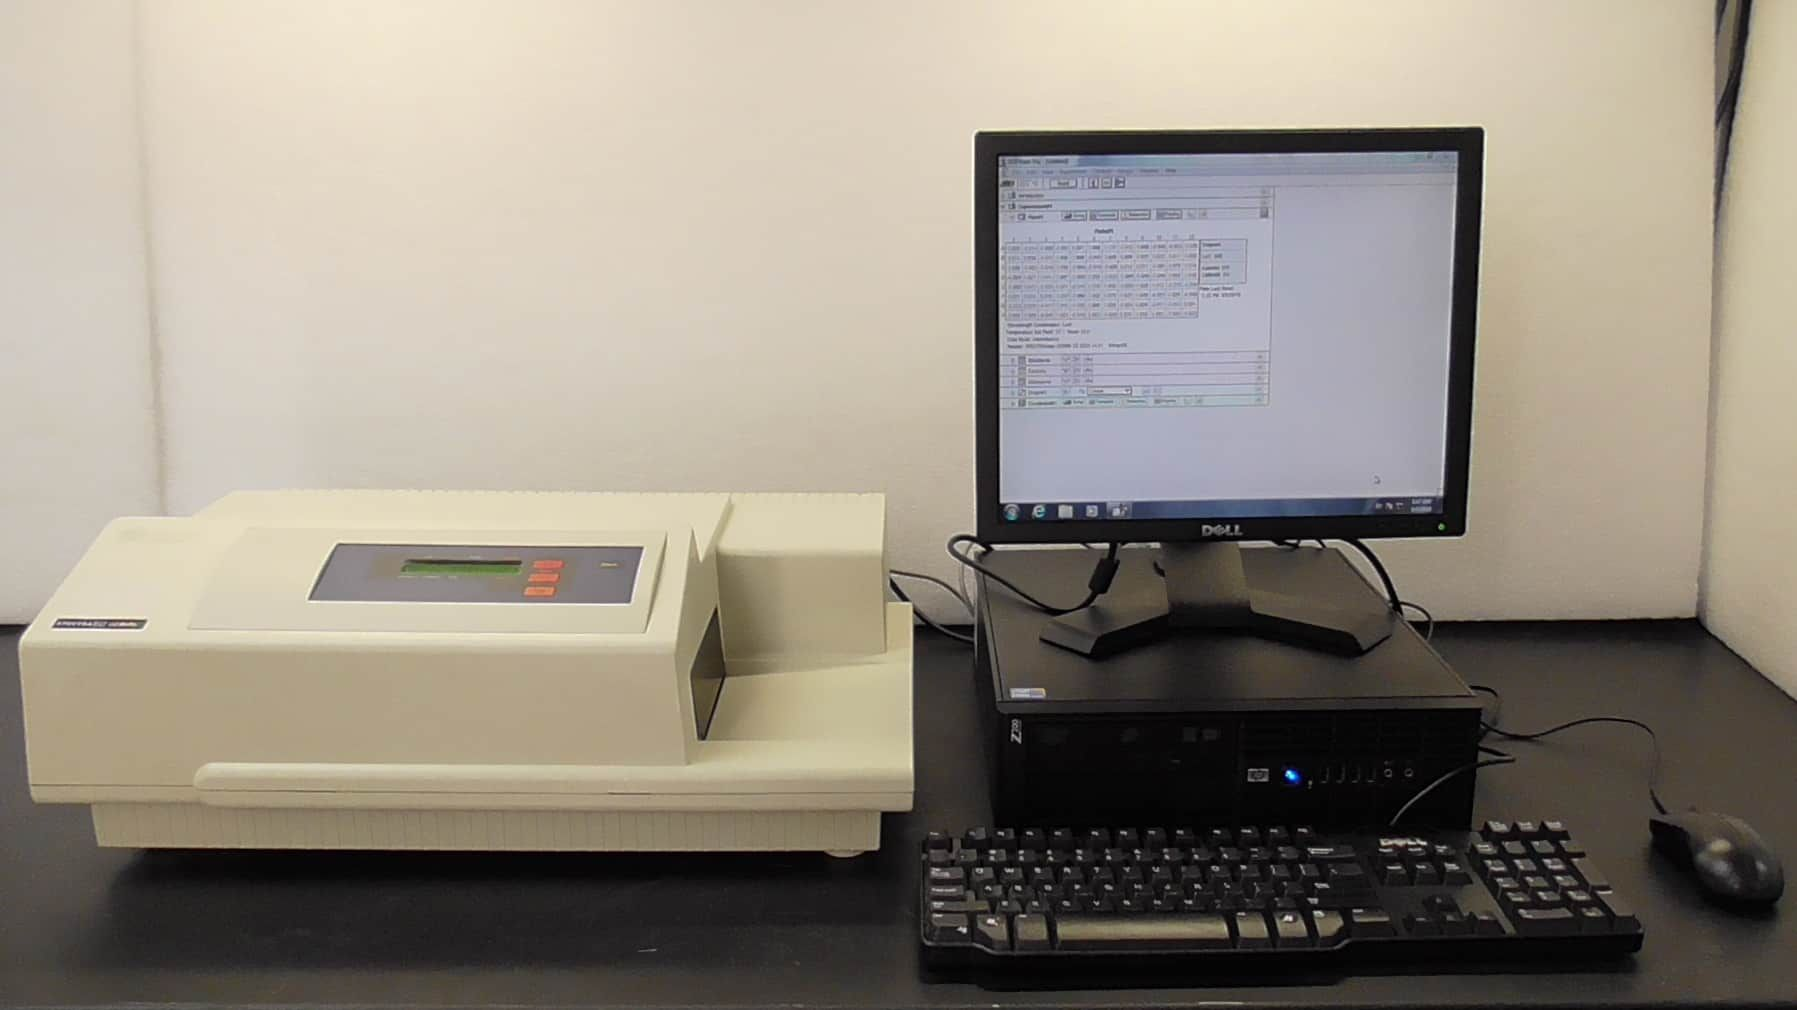 Molecular Devices Spectramax Gemini XS including software loaded PC, Monitor, Keyboard and Mouse